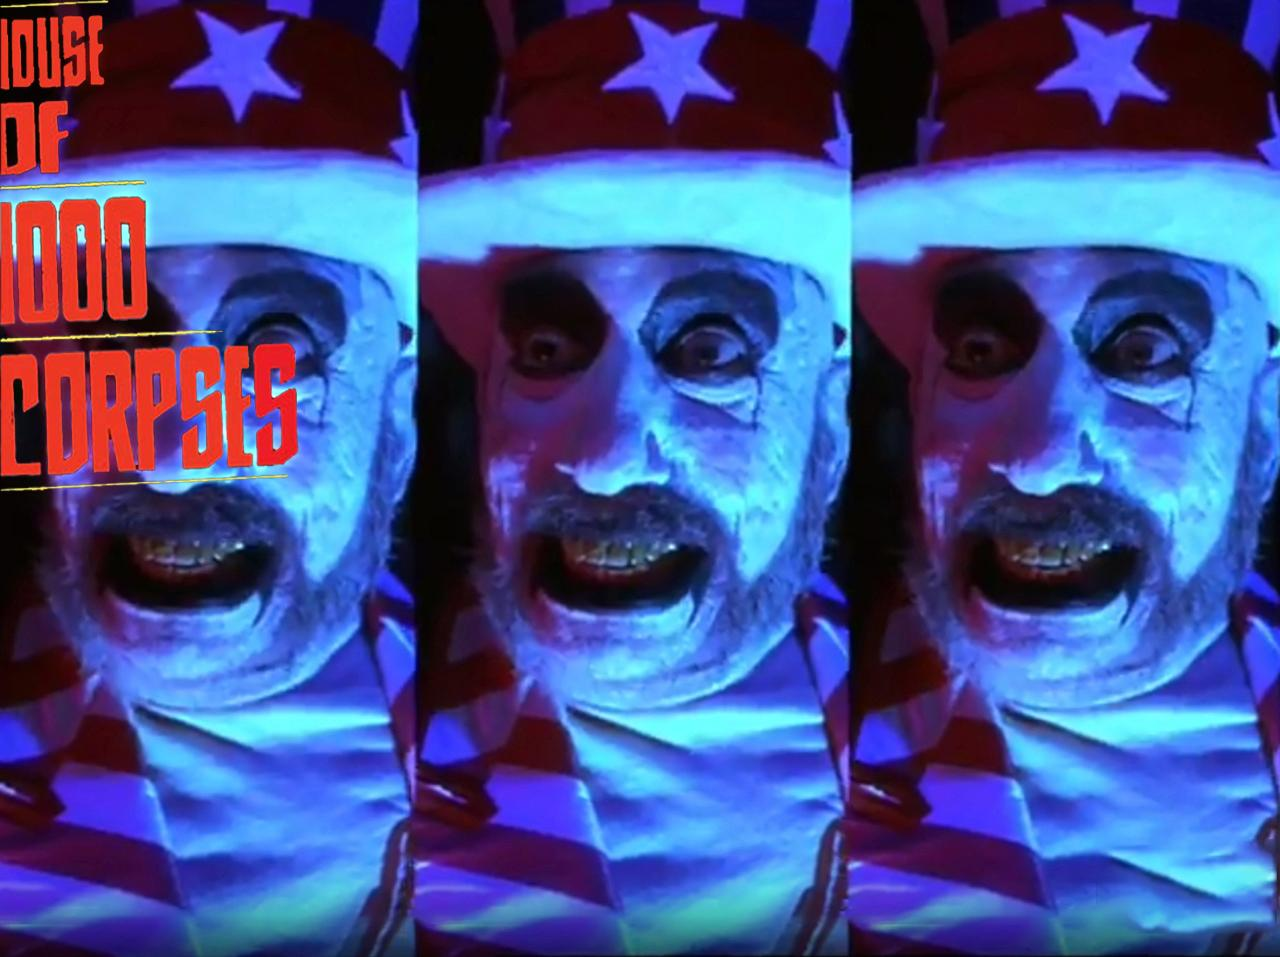 Sid Haig in House of 1000 Corpses (2003)